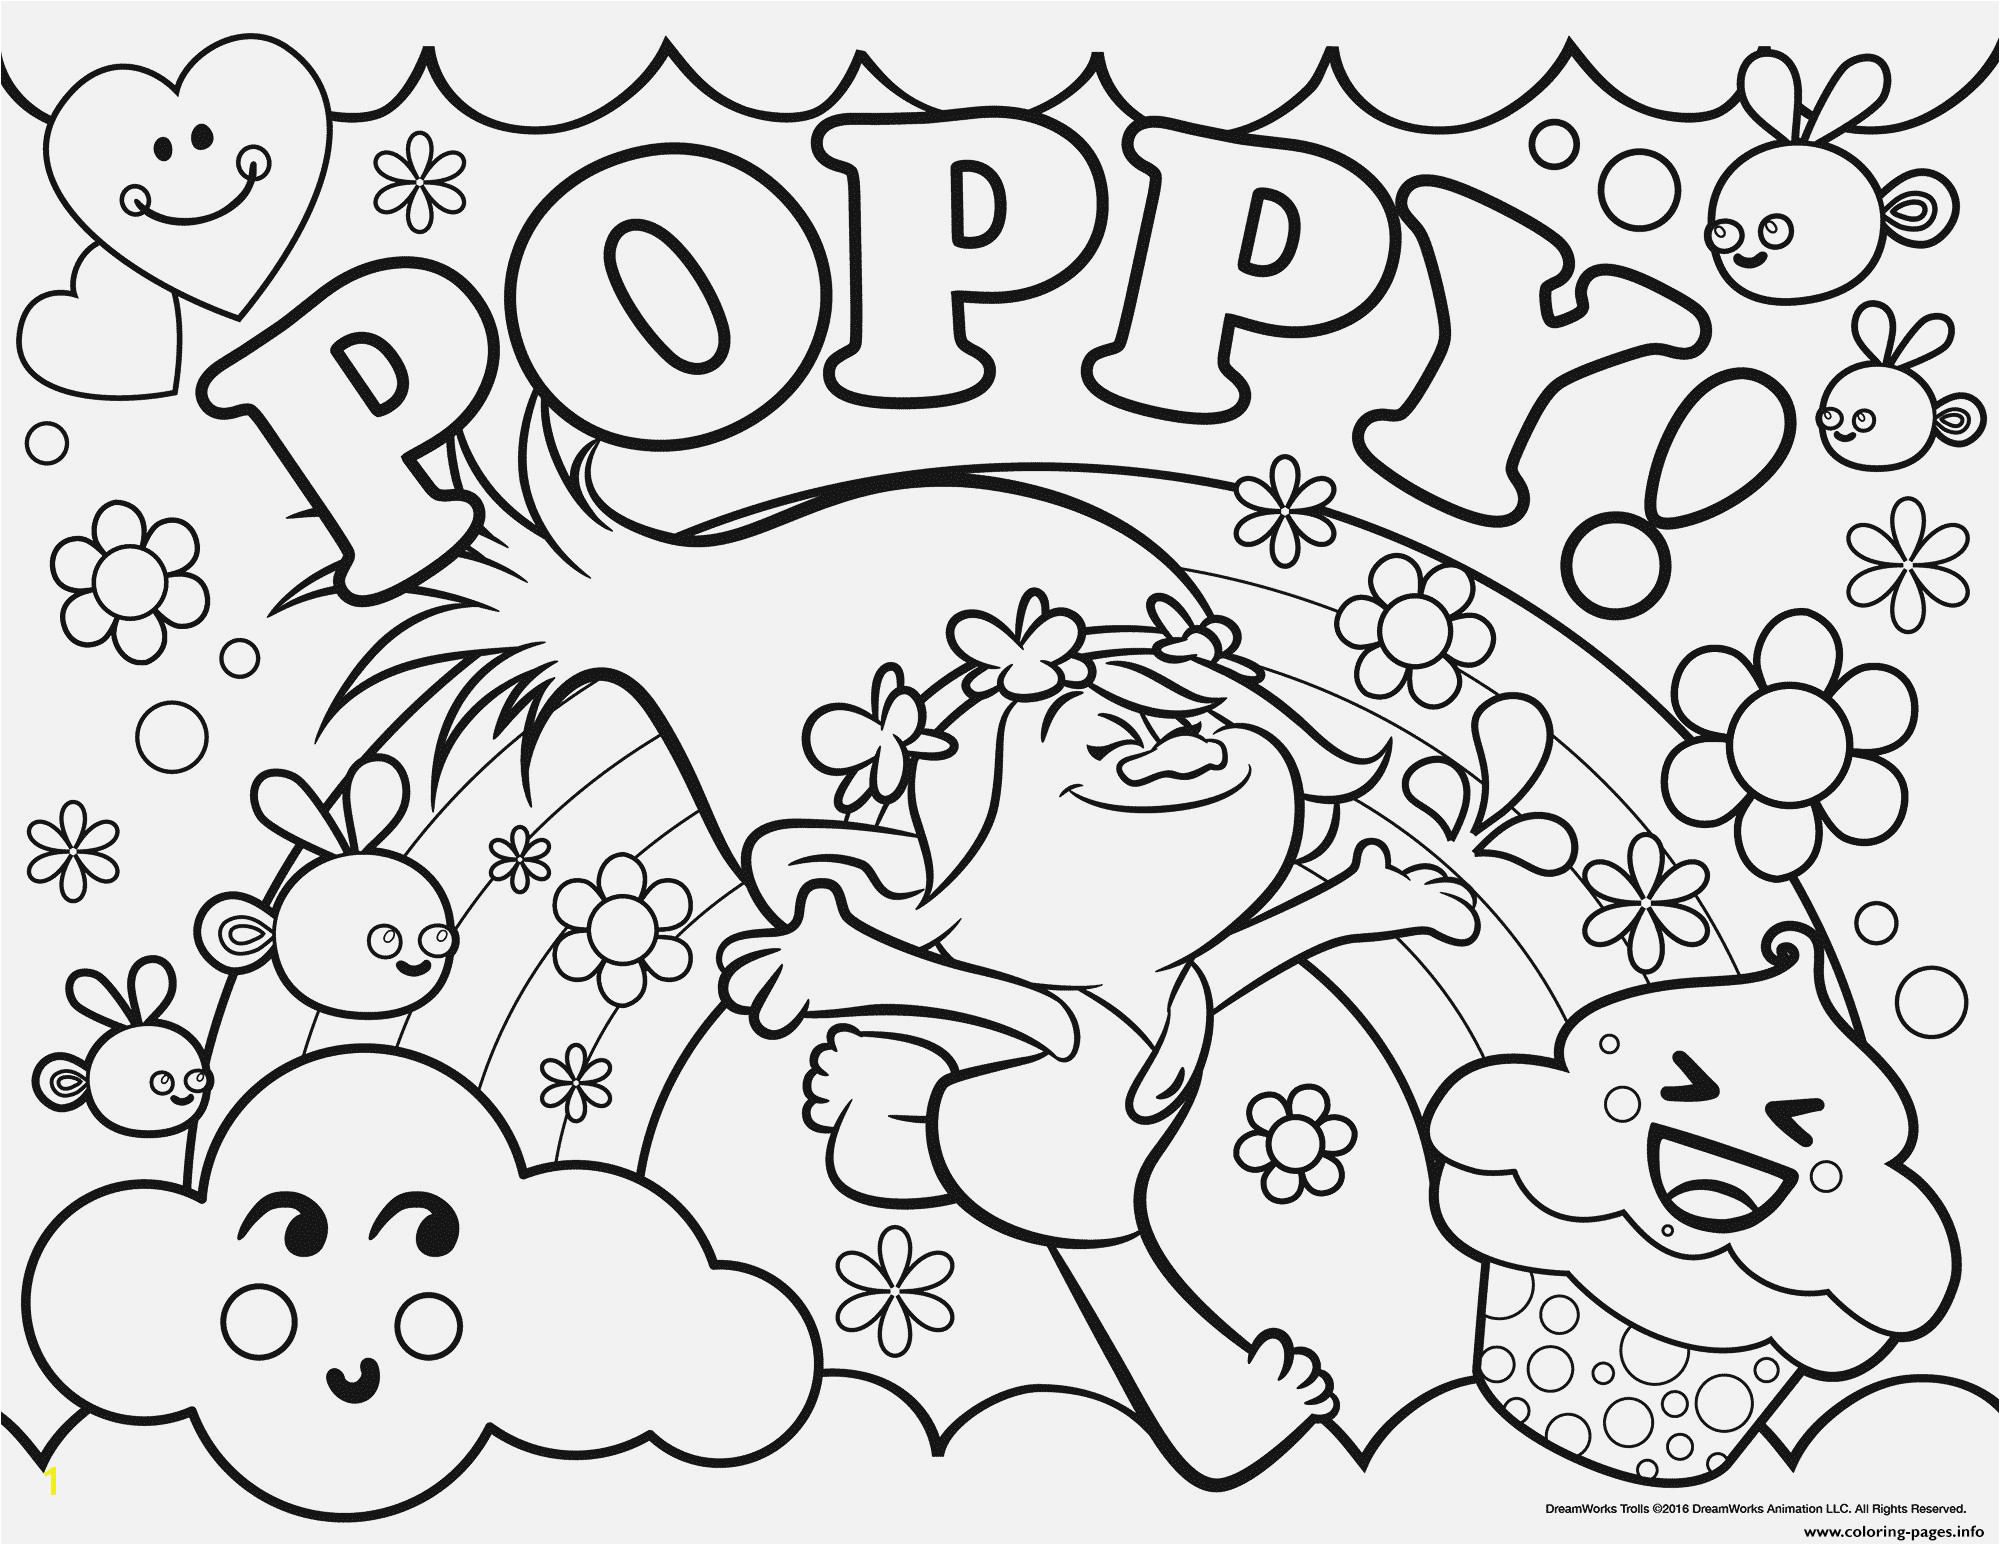 Free Trolls Coloring Pages the Best Ever Trolls Coloring Sheets Beautiful Trolls Coloring Pages Free